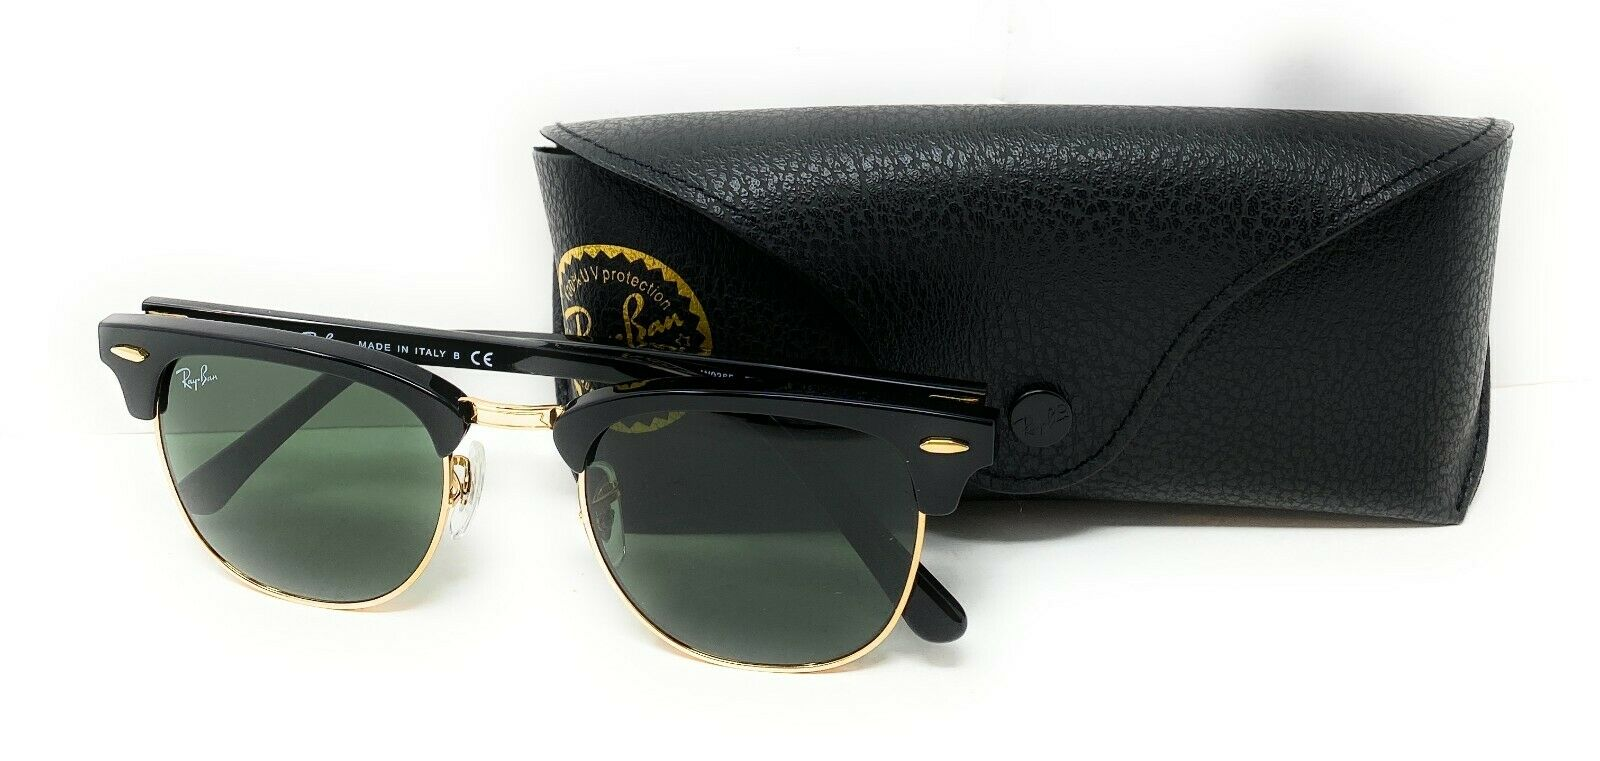 RAY BAN CLUBMASTER Green Classic G-15 Lens, Black Frame, RB3016 Sunglasses 51/21 Clothing, Shoes & Accessories